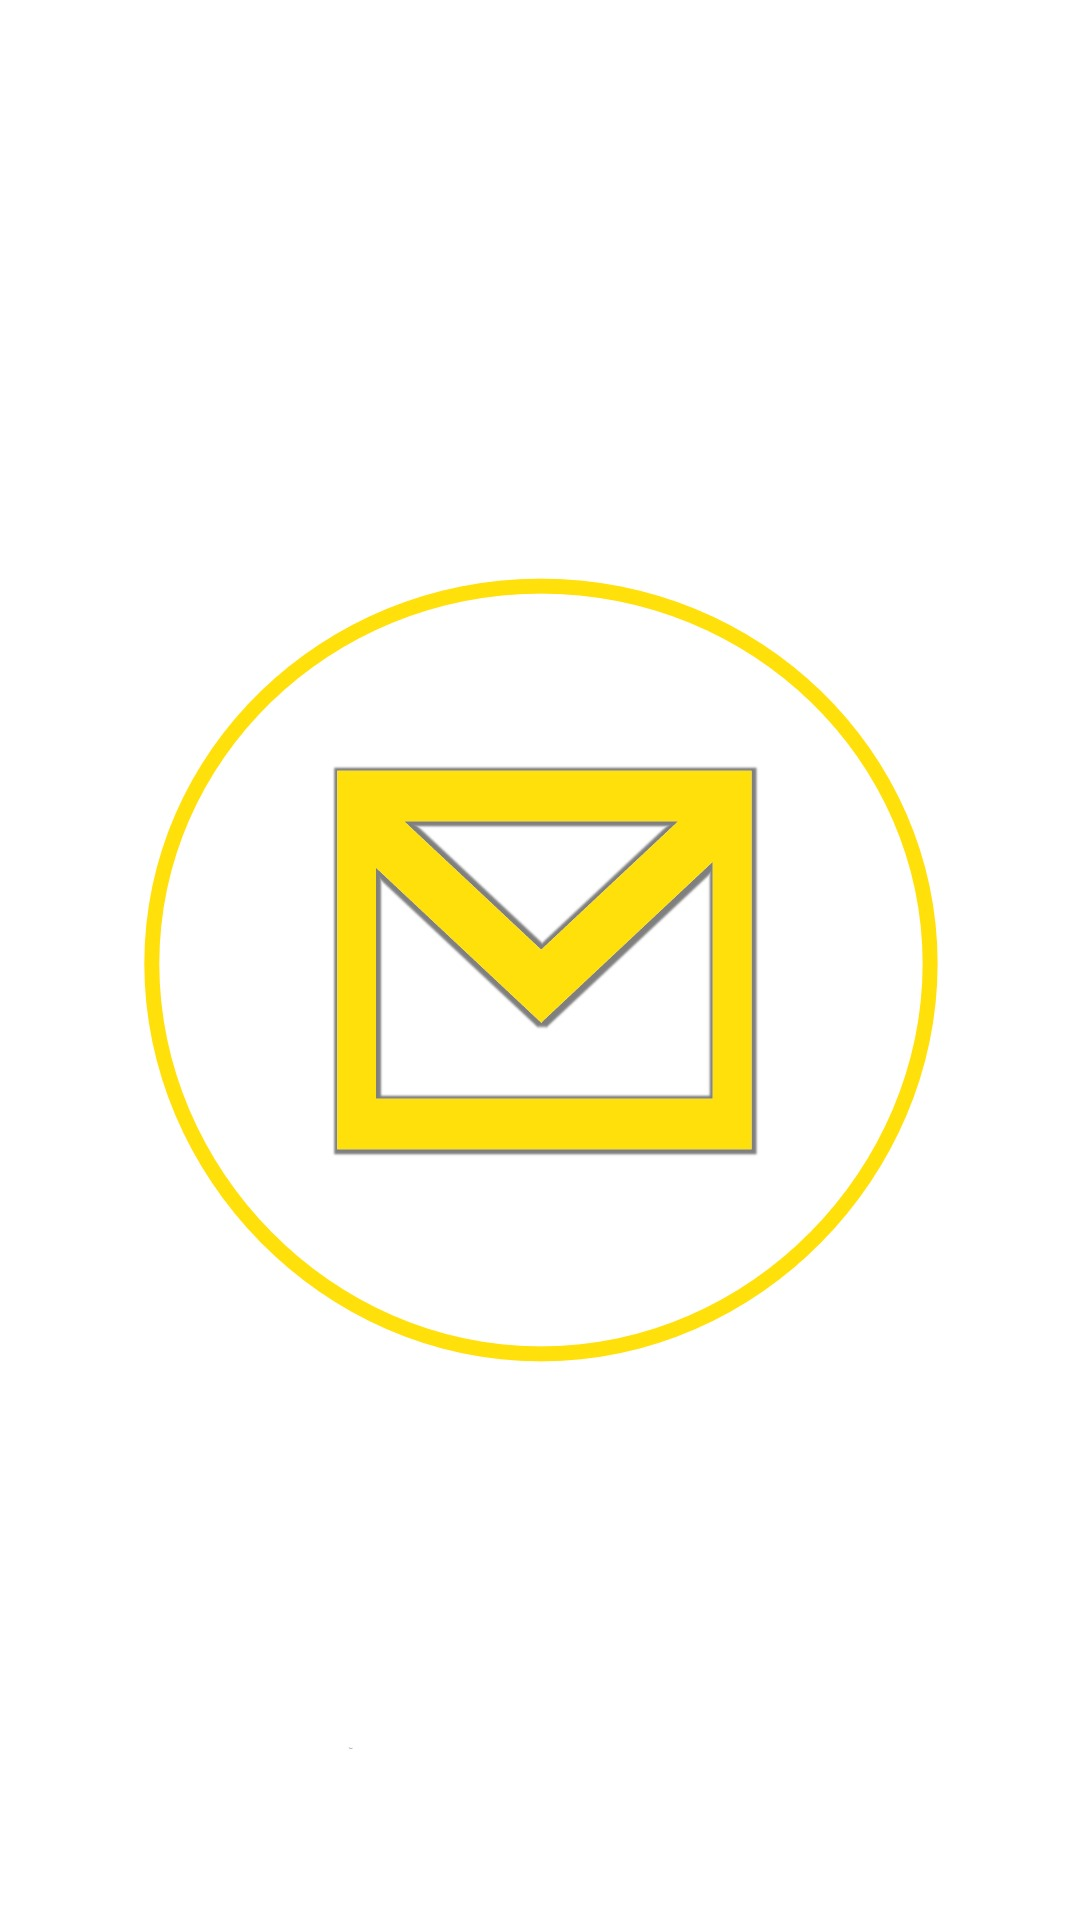 Instagram-cover-envelope-yellow-lotnotes.com.jpg